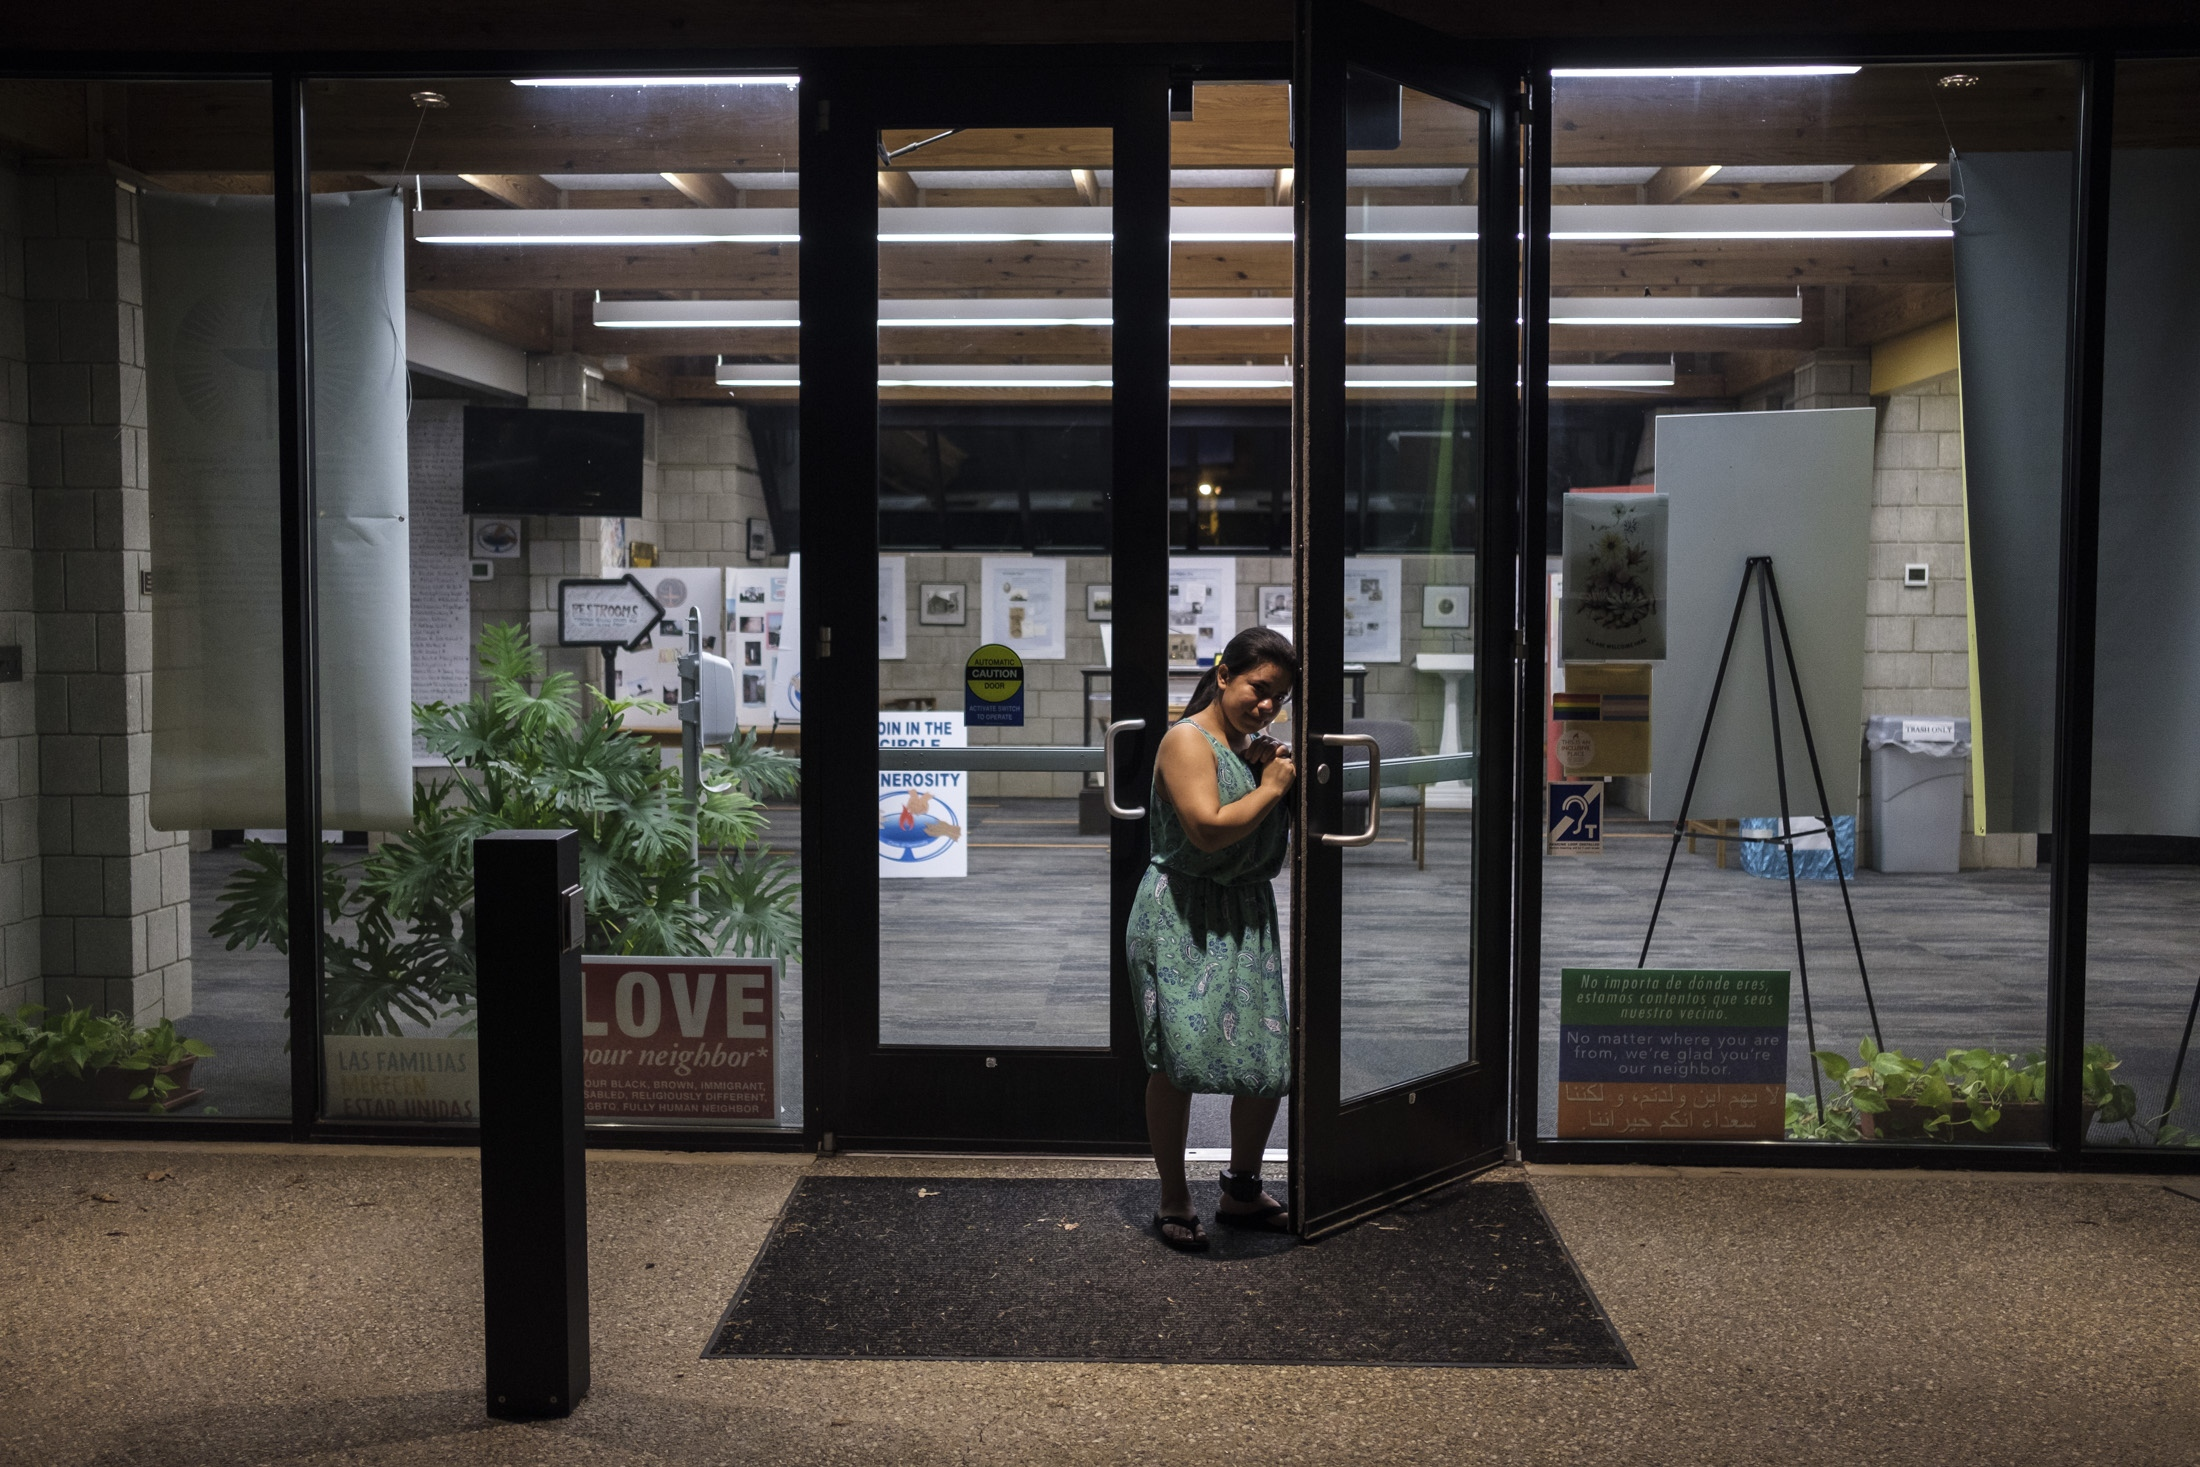 First time in months that Abbie opens the door of the First Unitarian Universalist Church that receive her in sanctuary in June 2018.